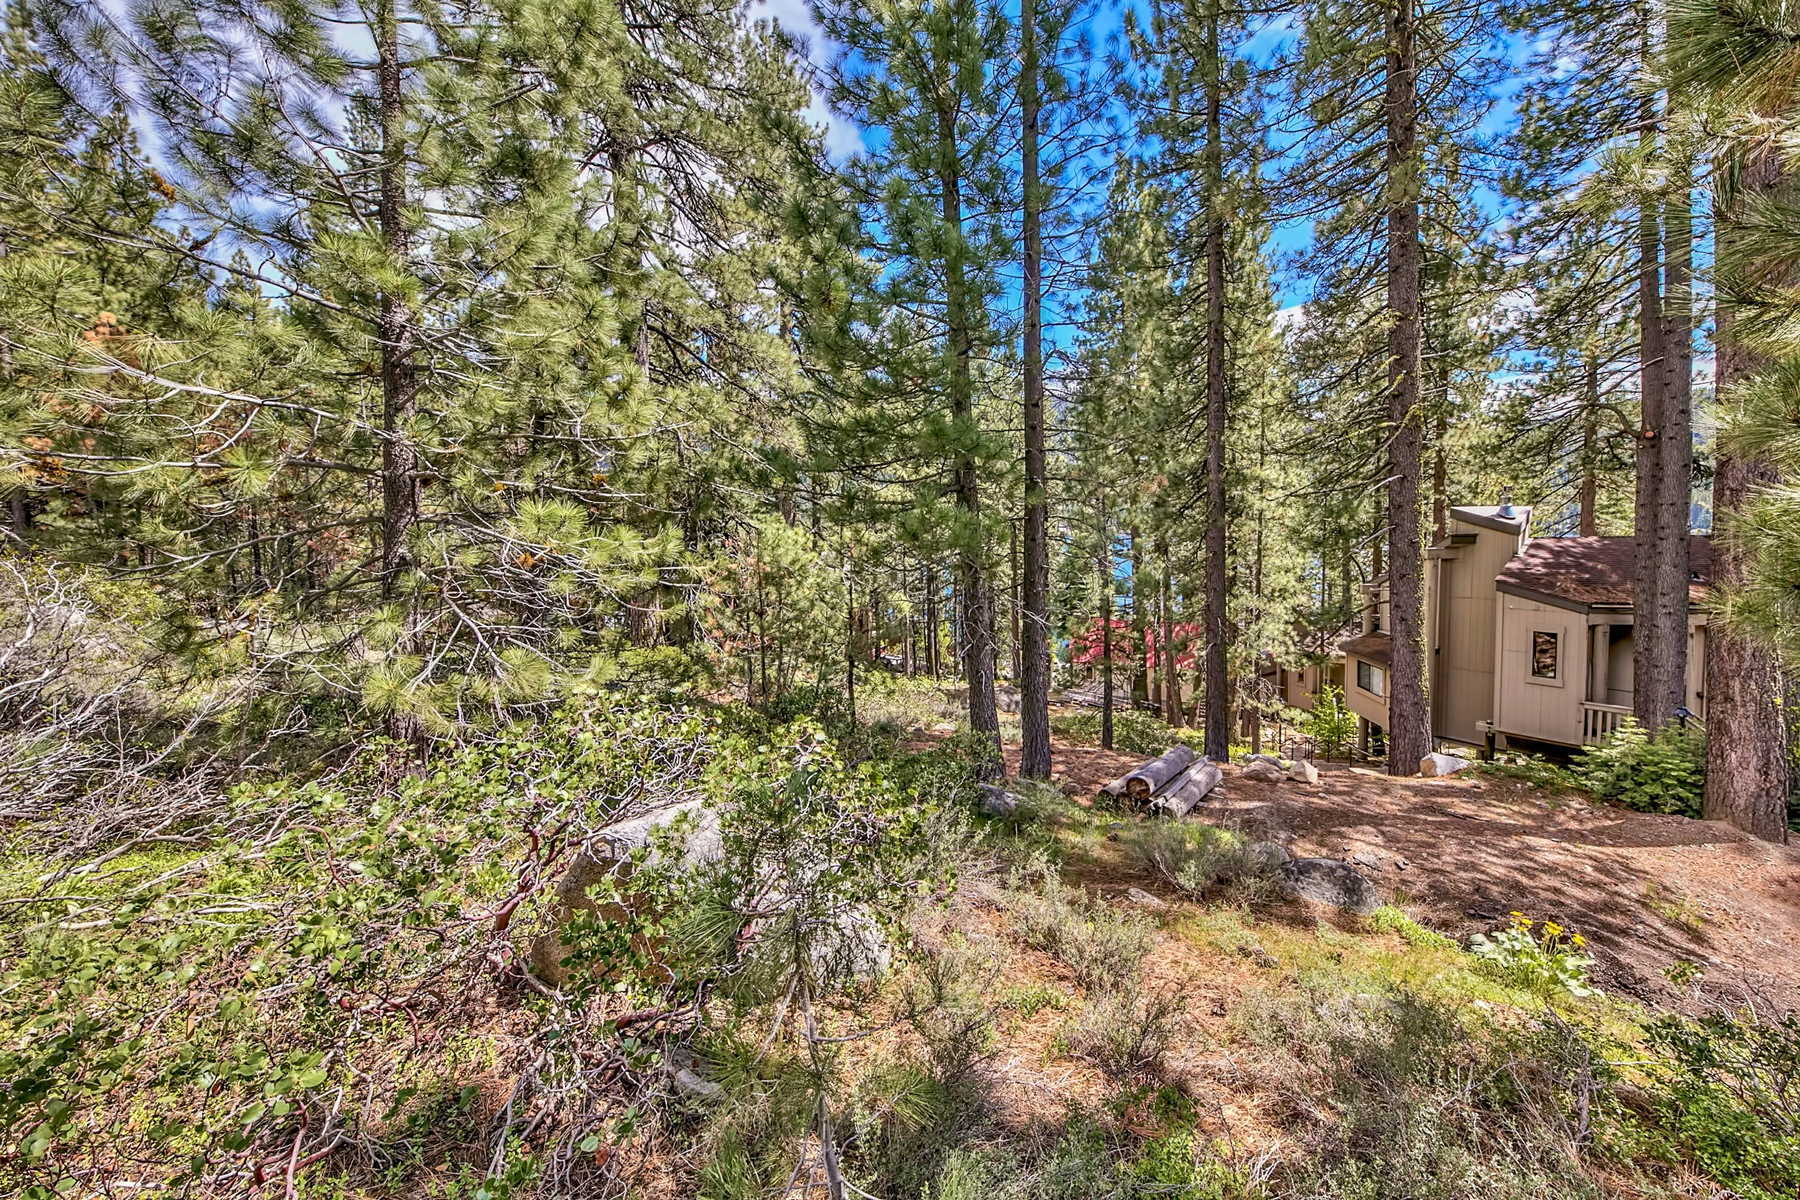 Additional photo for property listing at 10275 Donner Lake Road, Truckee, CA 10275 Donner Lake Road Truckee, California 96161 United States